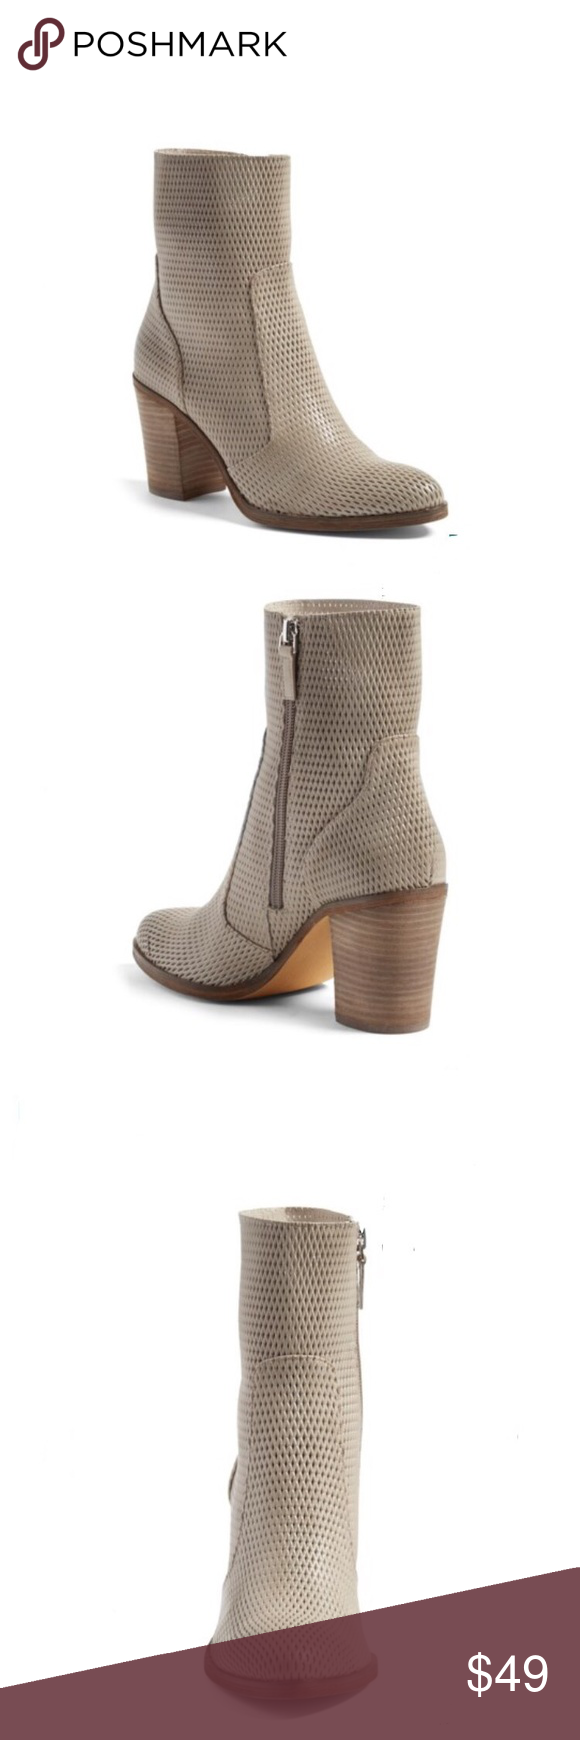 """Hinge daphne taupe leather ankle boot bootie 8.5 An almond-toe bootie made from panels of perforated leather and lifted with a stacked block heel is sure to be a go-to style choice this season. 3"""" heel; 5 3/4"""" shaft (size 8.5) Side zip closure Leather upper/synthetic lining/rubber sole These are labeled a size 7.5 but they run a size larger.  These are NEW not in original box hinge Shoes Ankle Boots & Booties"""